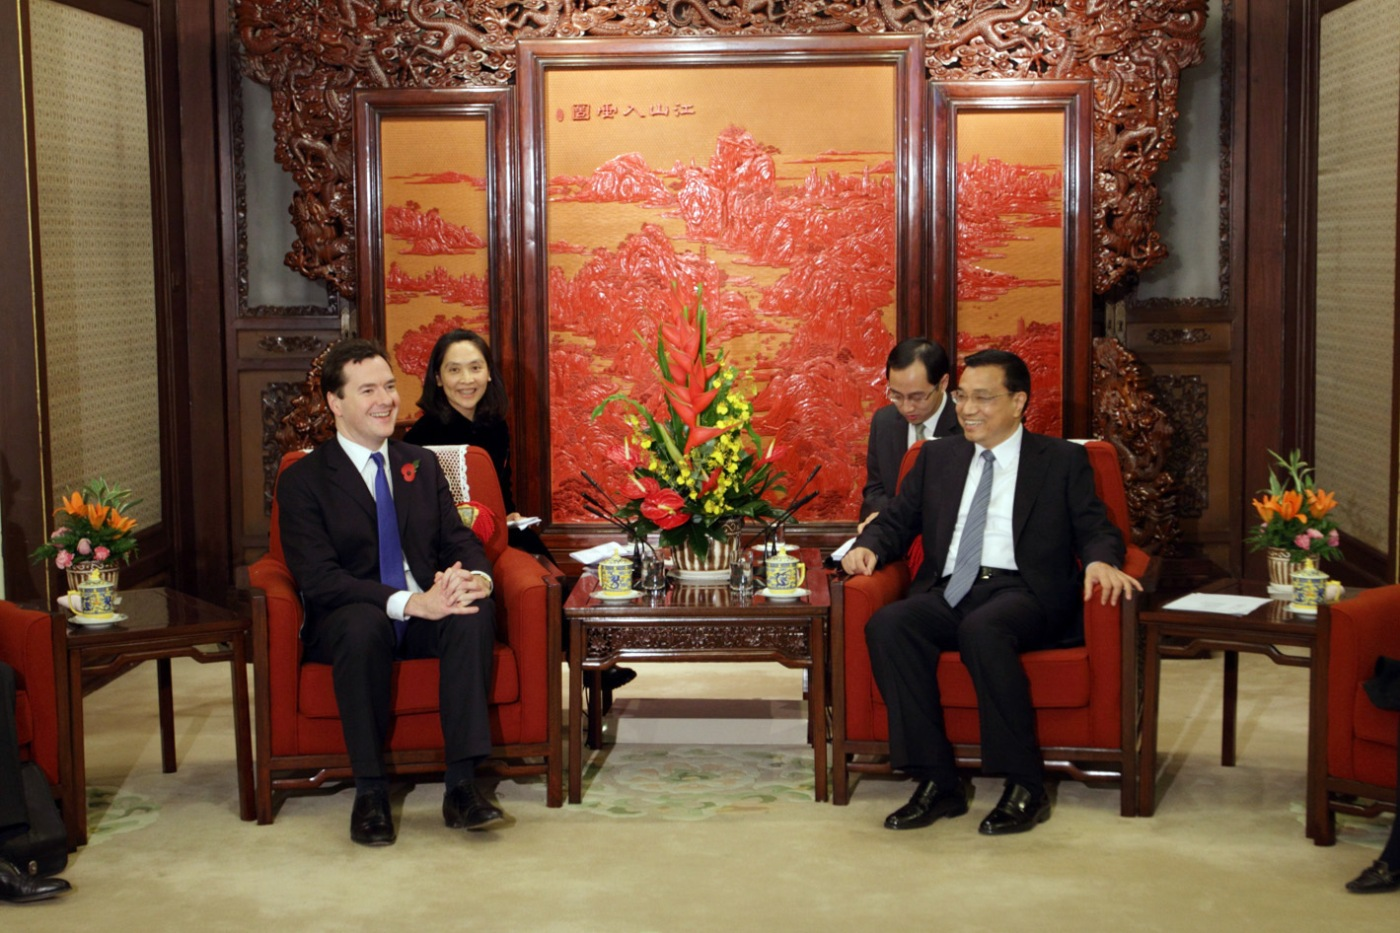 CHINA. Beijing. George Osborne, Britain's Chancellor of the Exchequer meeting with Li Keqiang, the Executive Vice-Premier of China. 2010